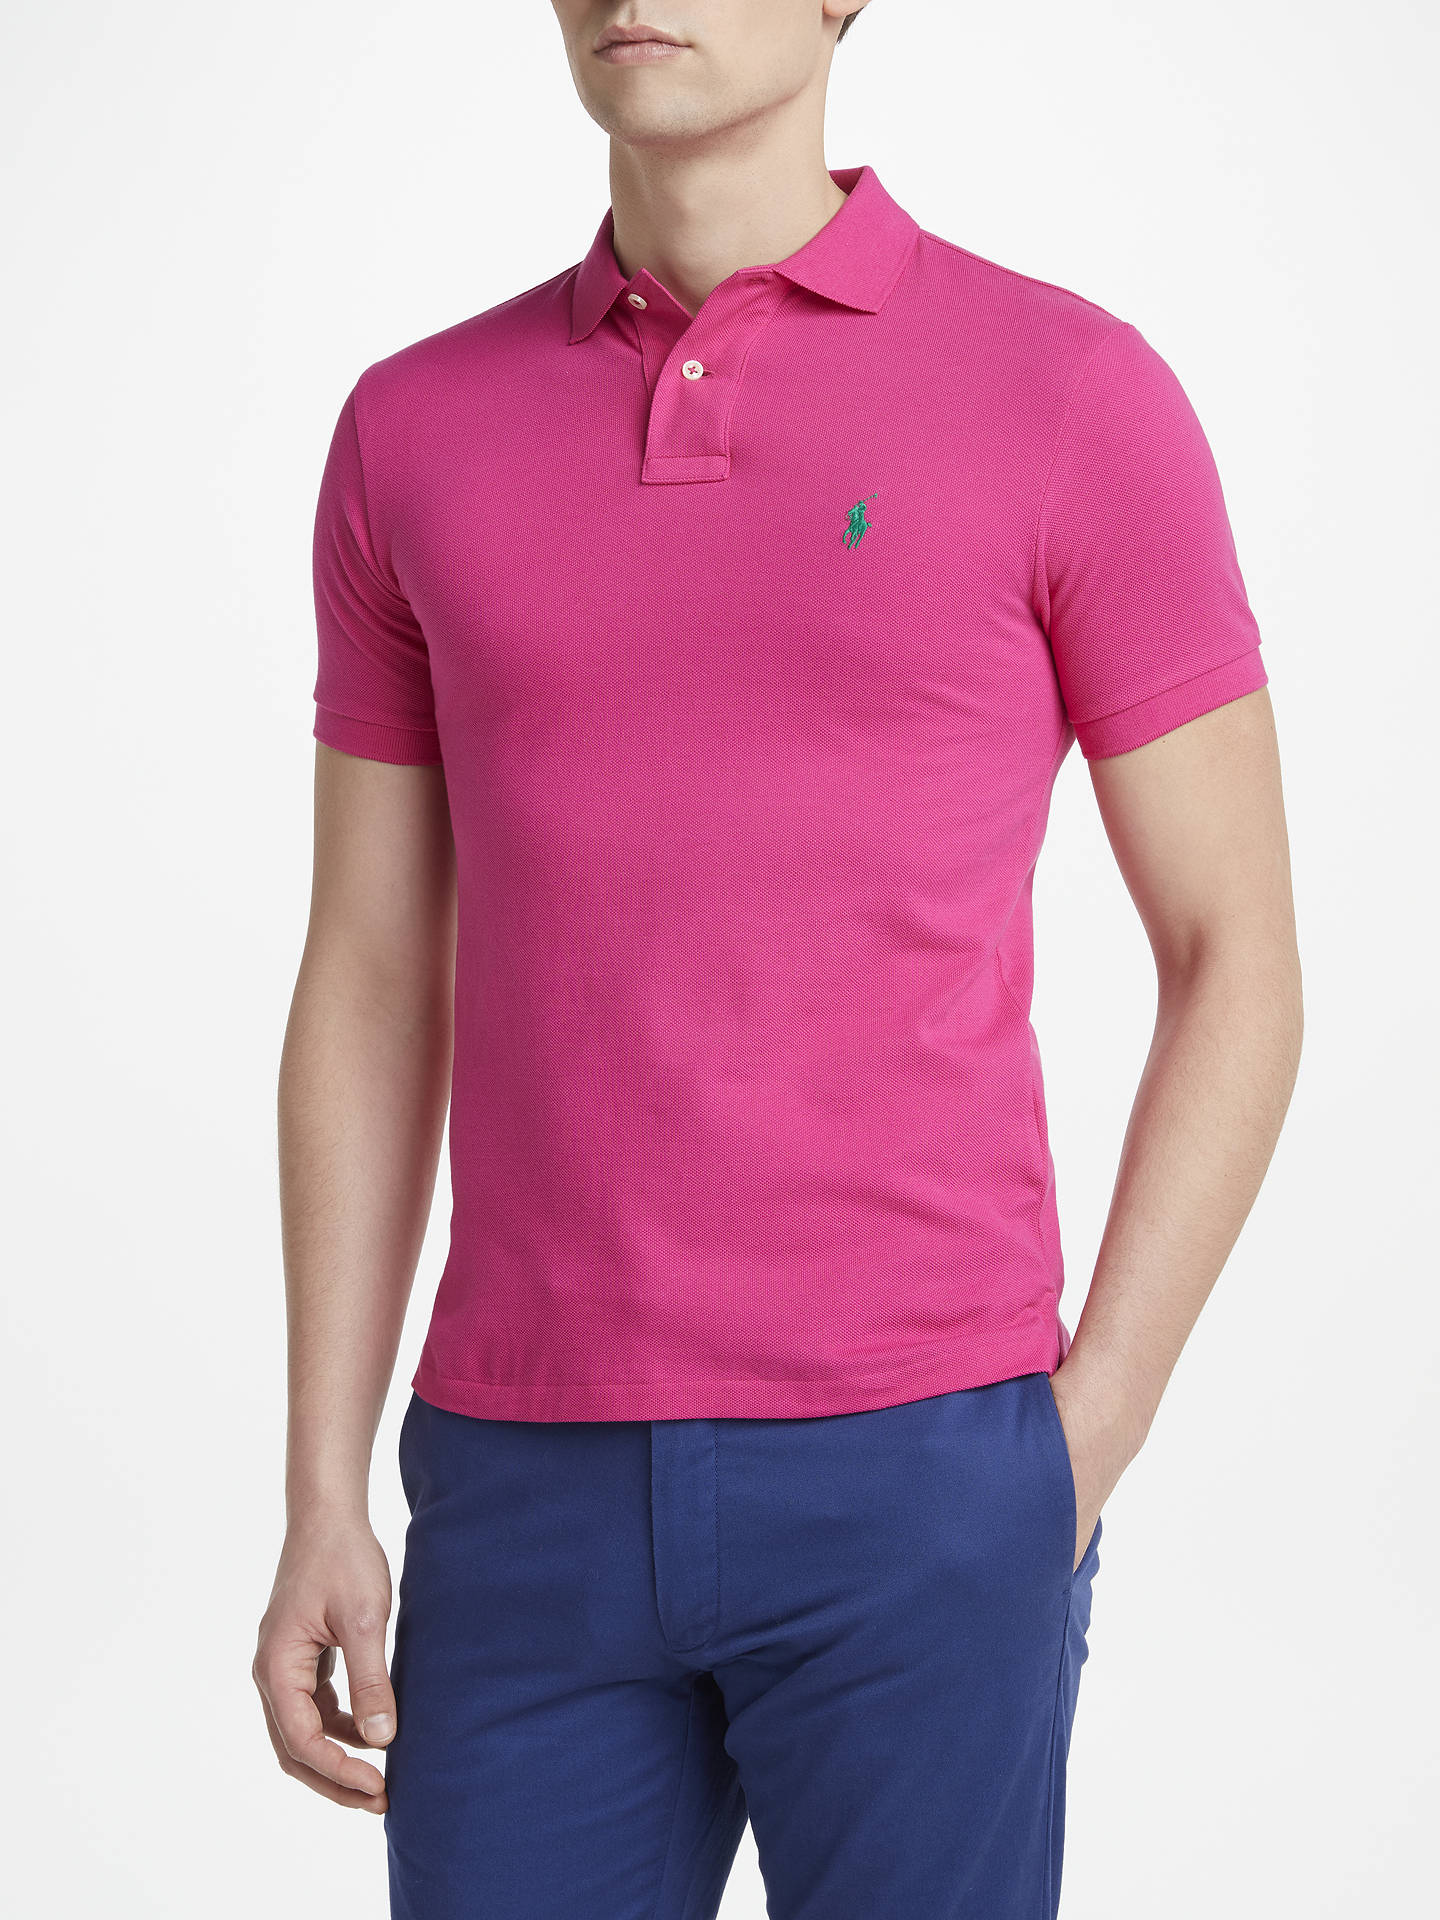 263f12bf Buy Polo Ralph Lauren Slim Fit Polo Top, Currant, S Online at johnlewis.